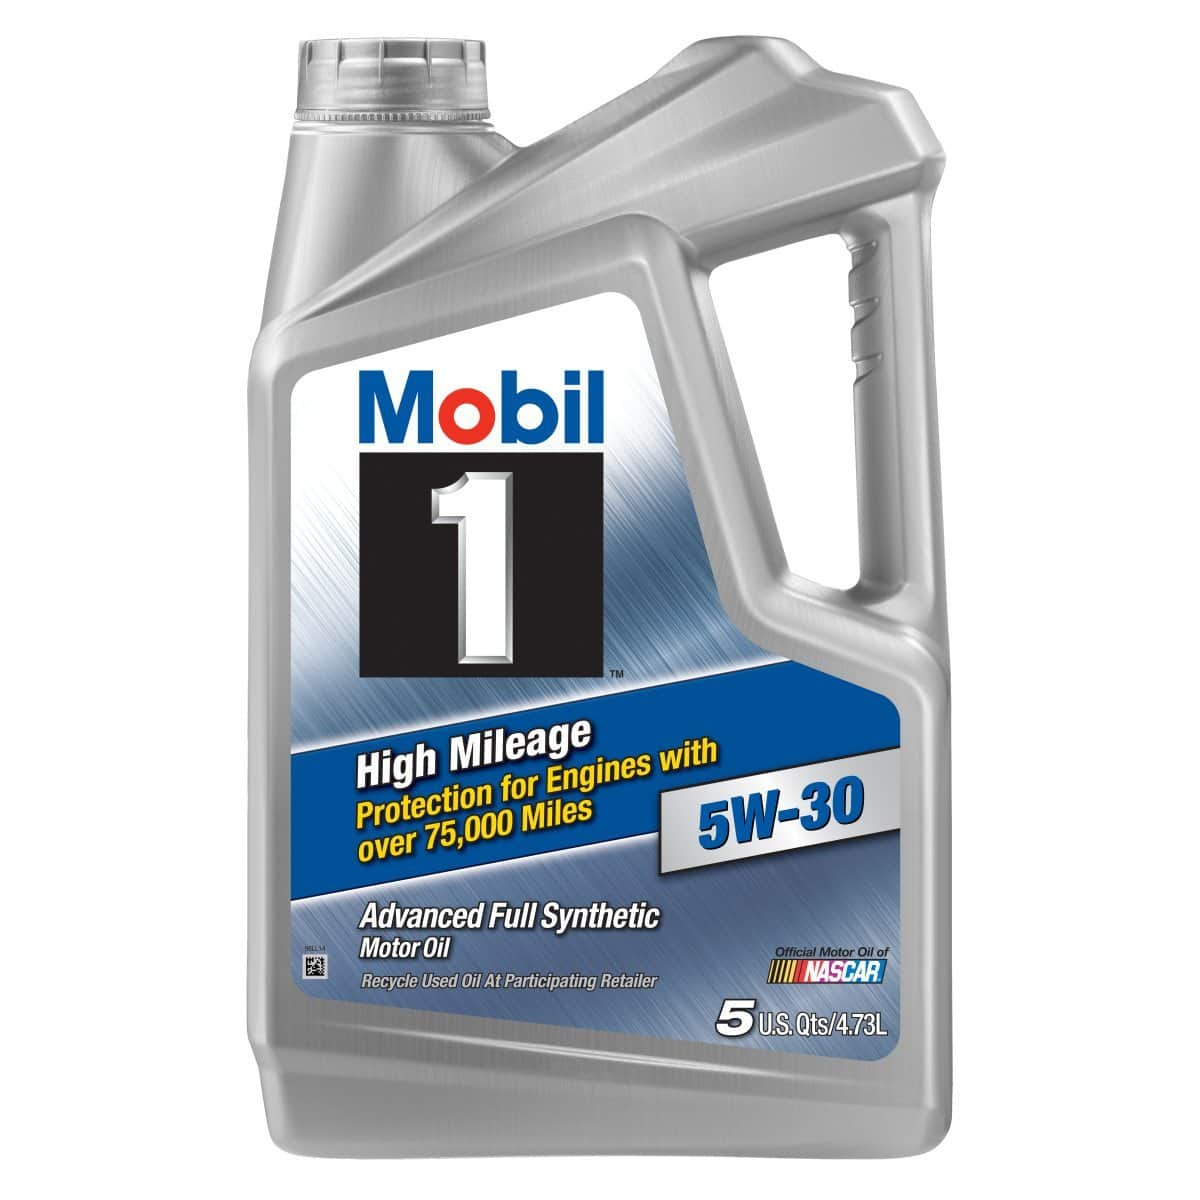 5 Quart Mobil 1 Full Synthetic / Extended Performance Motor Oil in Various Weights - $10.88 / $13.47 After Rebate @ Amazon FS w/ Prime